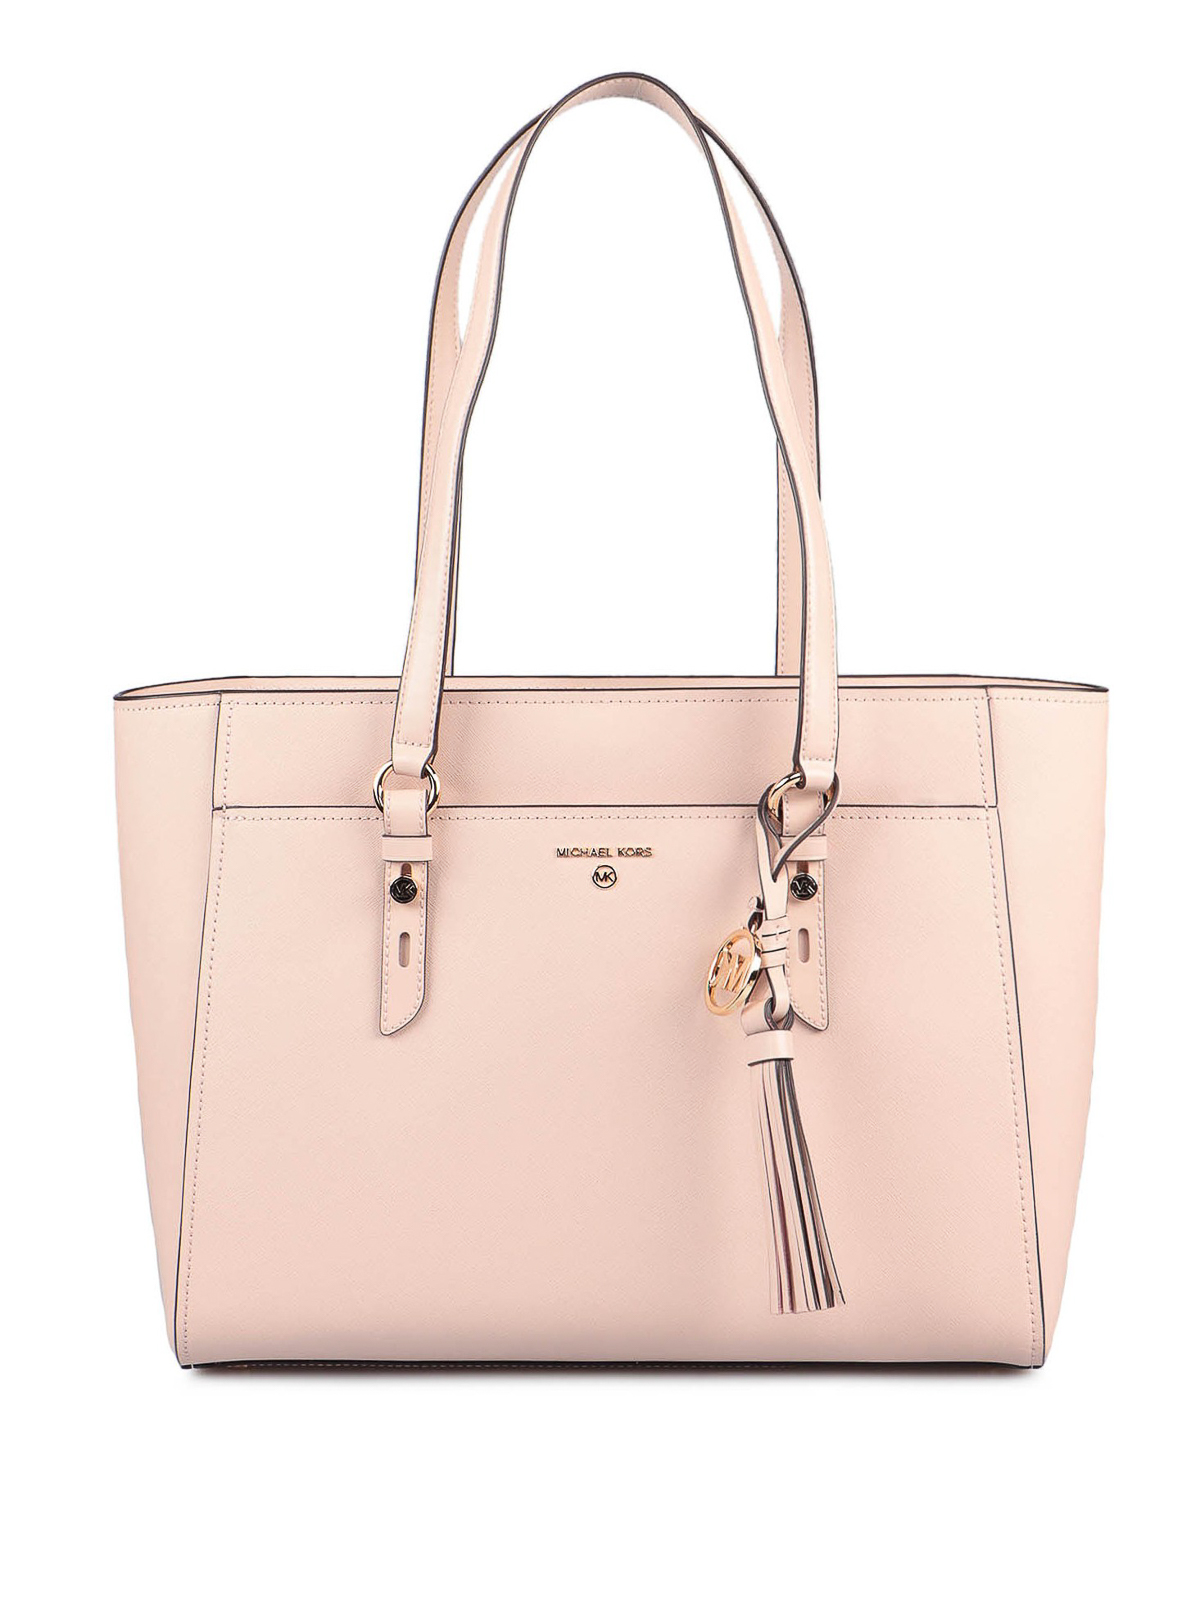 Michael Kors Sullivan Large Saffiano Leather Tote Bag In Pink